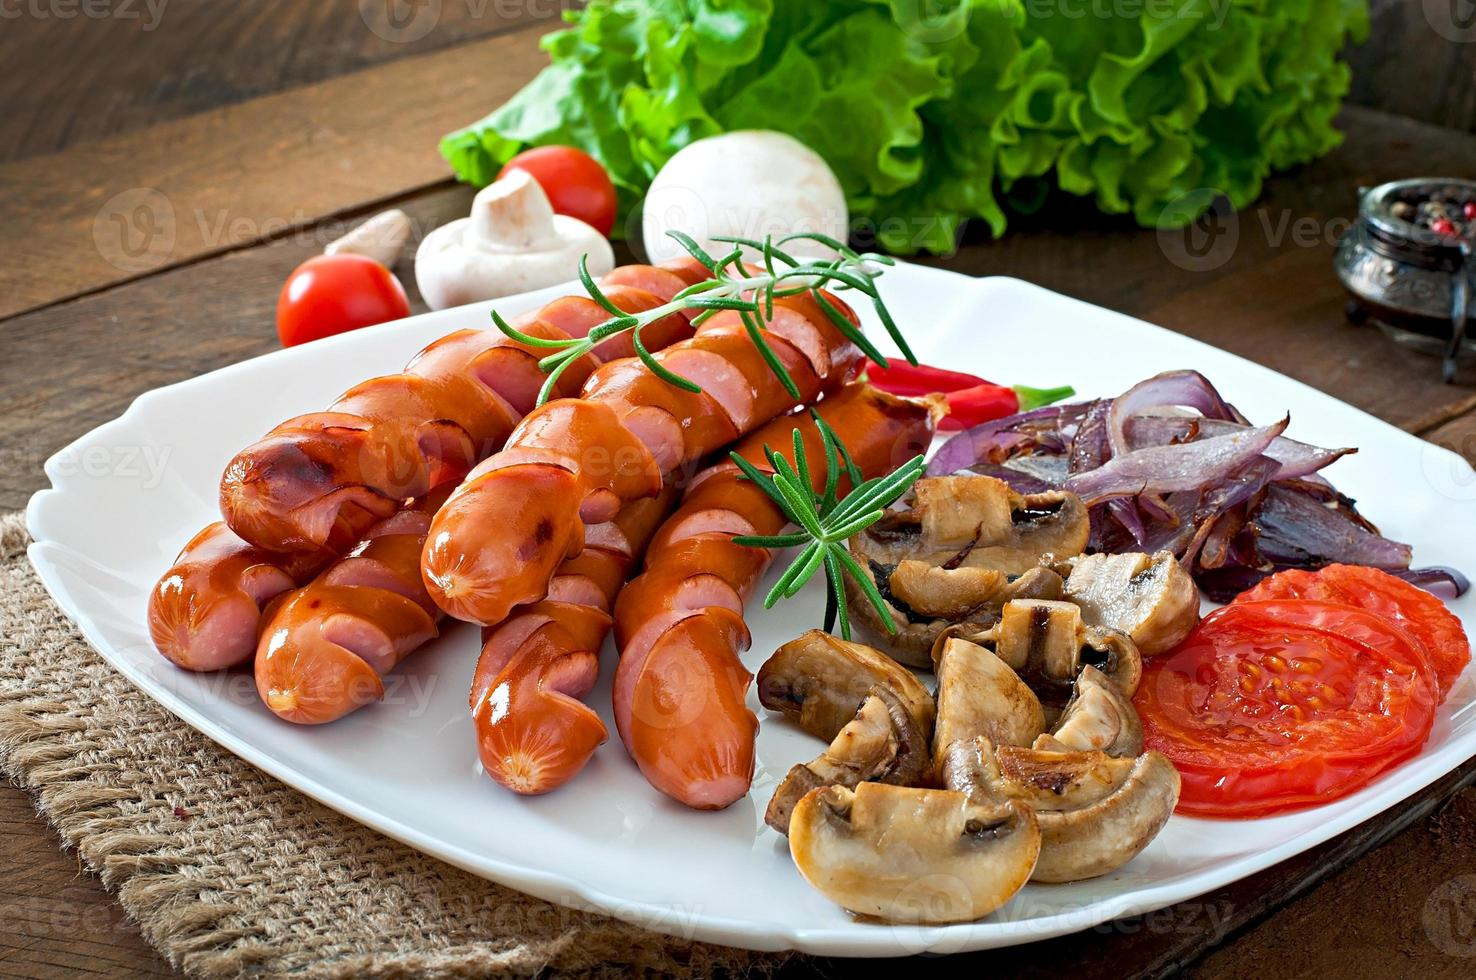 Fried sausages with vegetables on a white plate photo